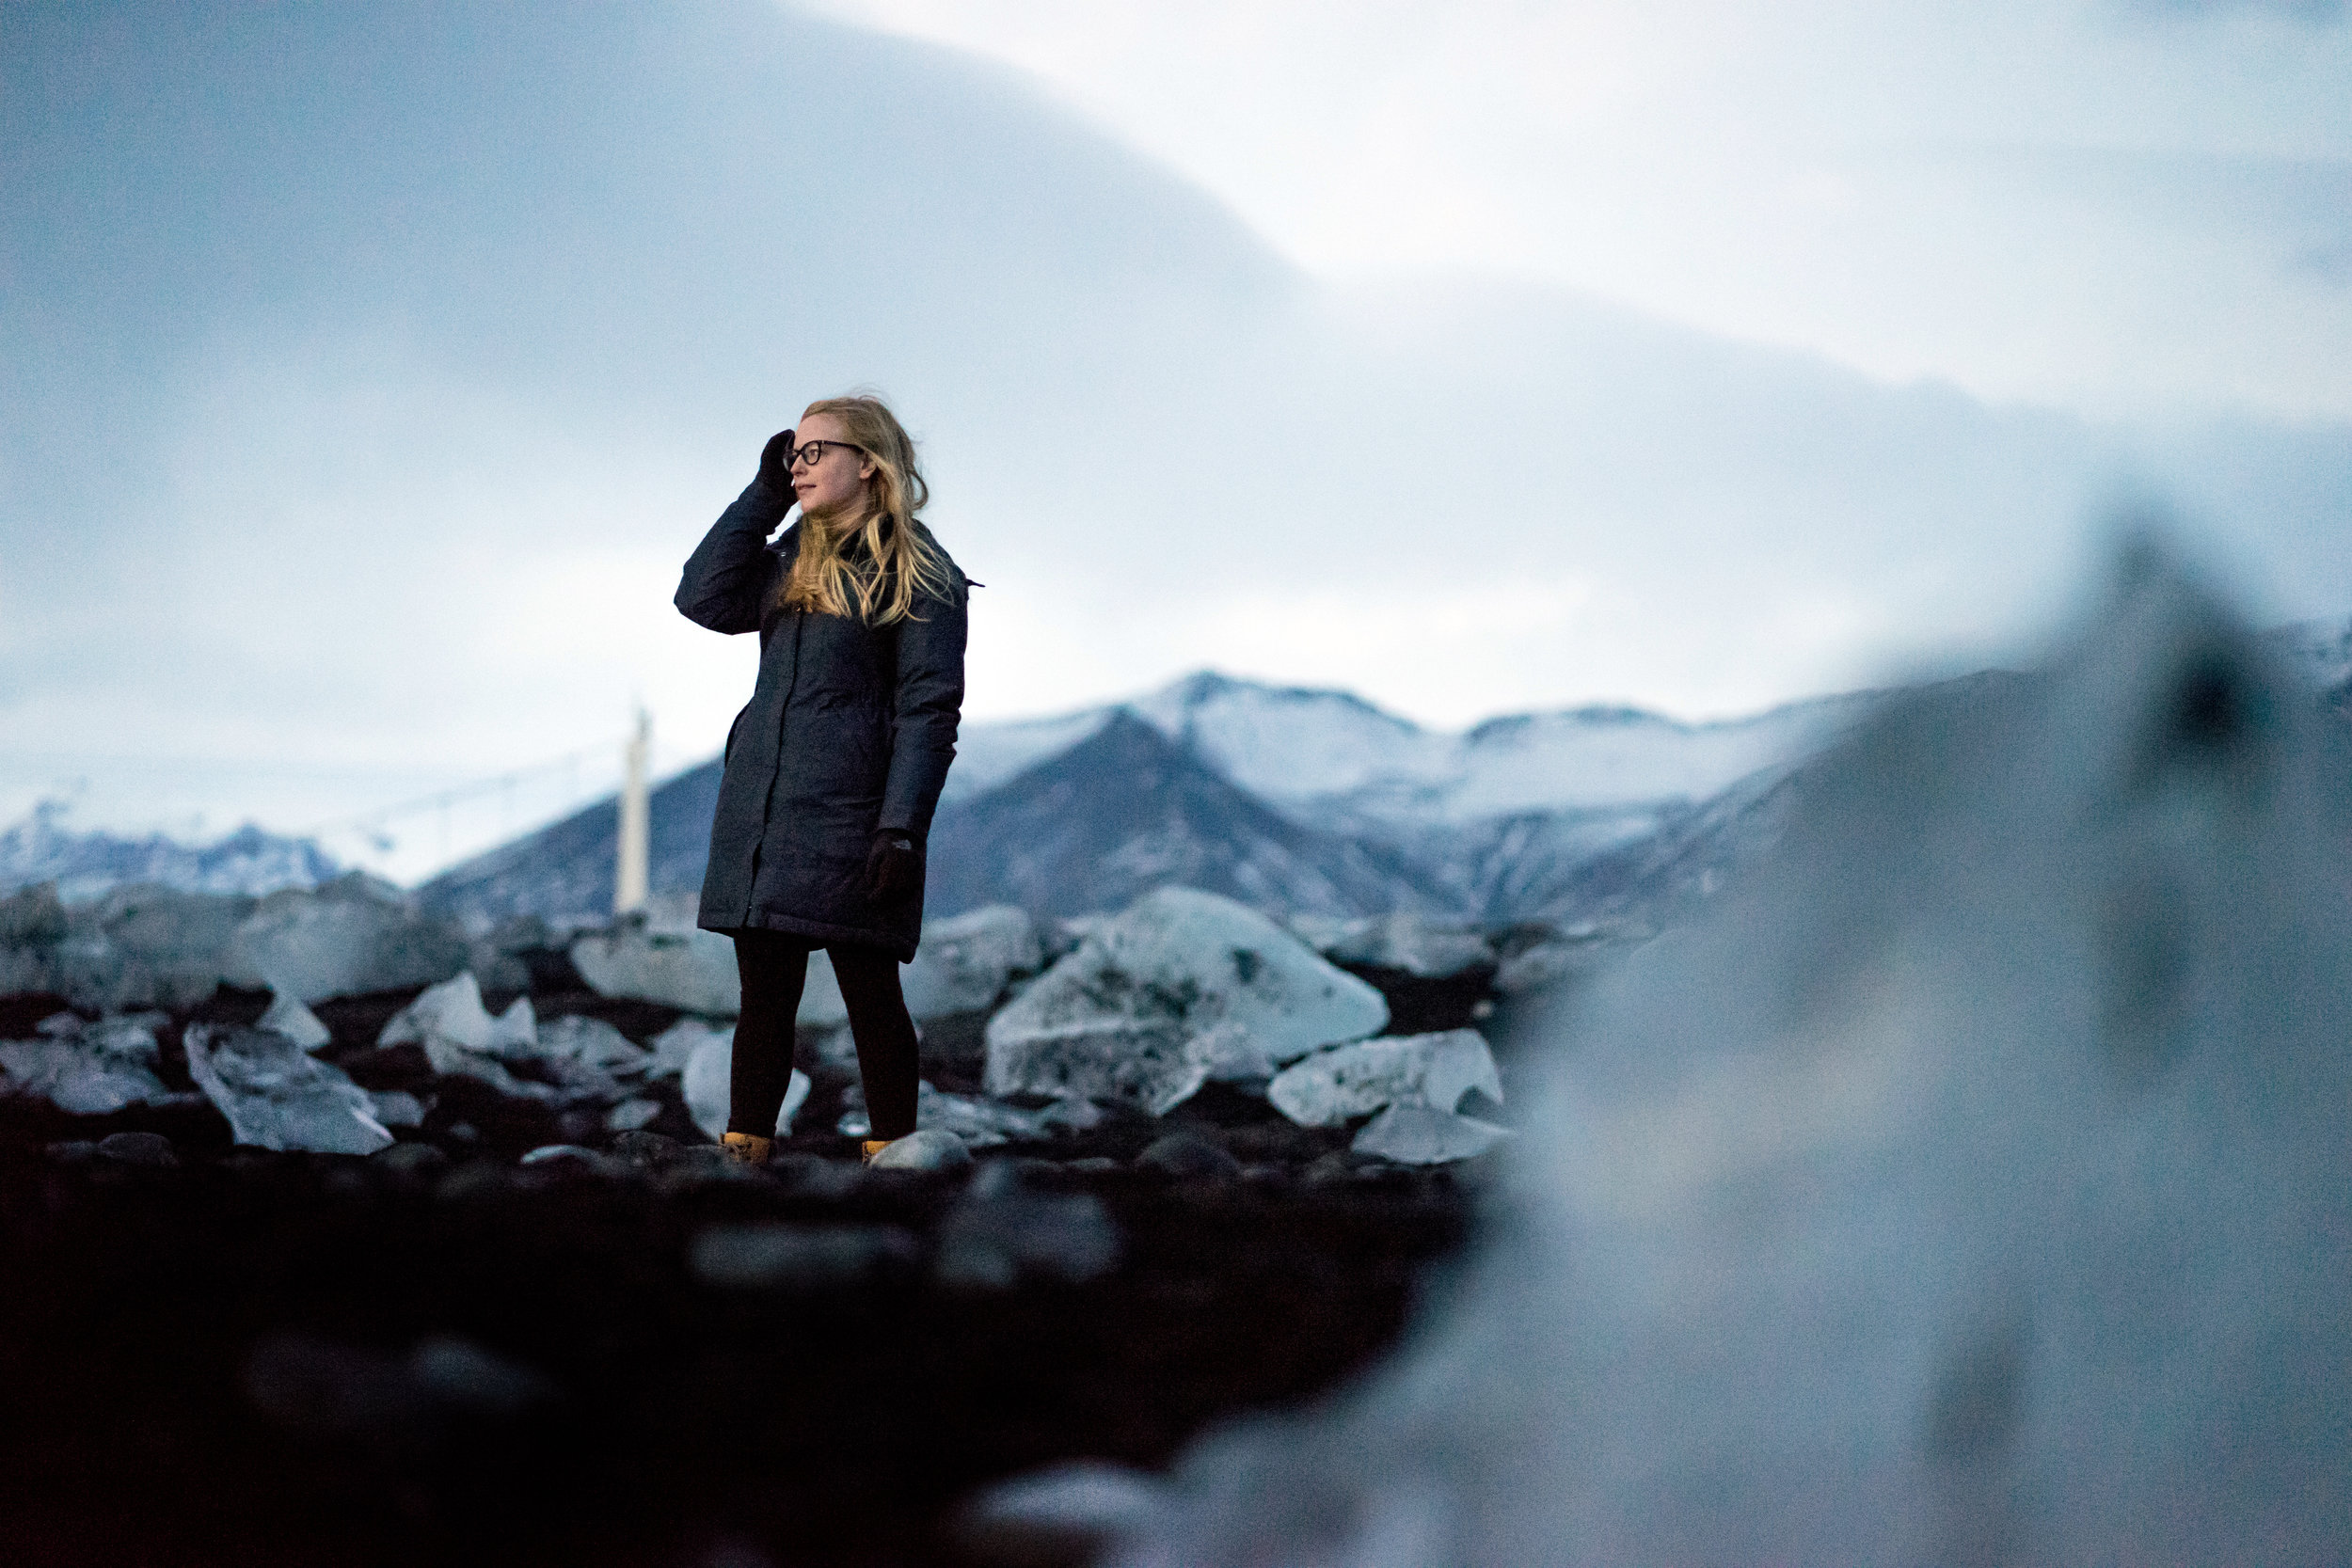 Maggie a la Mode - 9 Things No One Tells You About RoadTripping in Iceland Diamond Beach.jpg